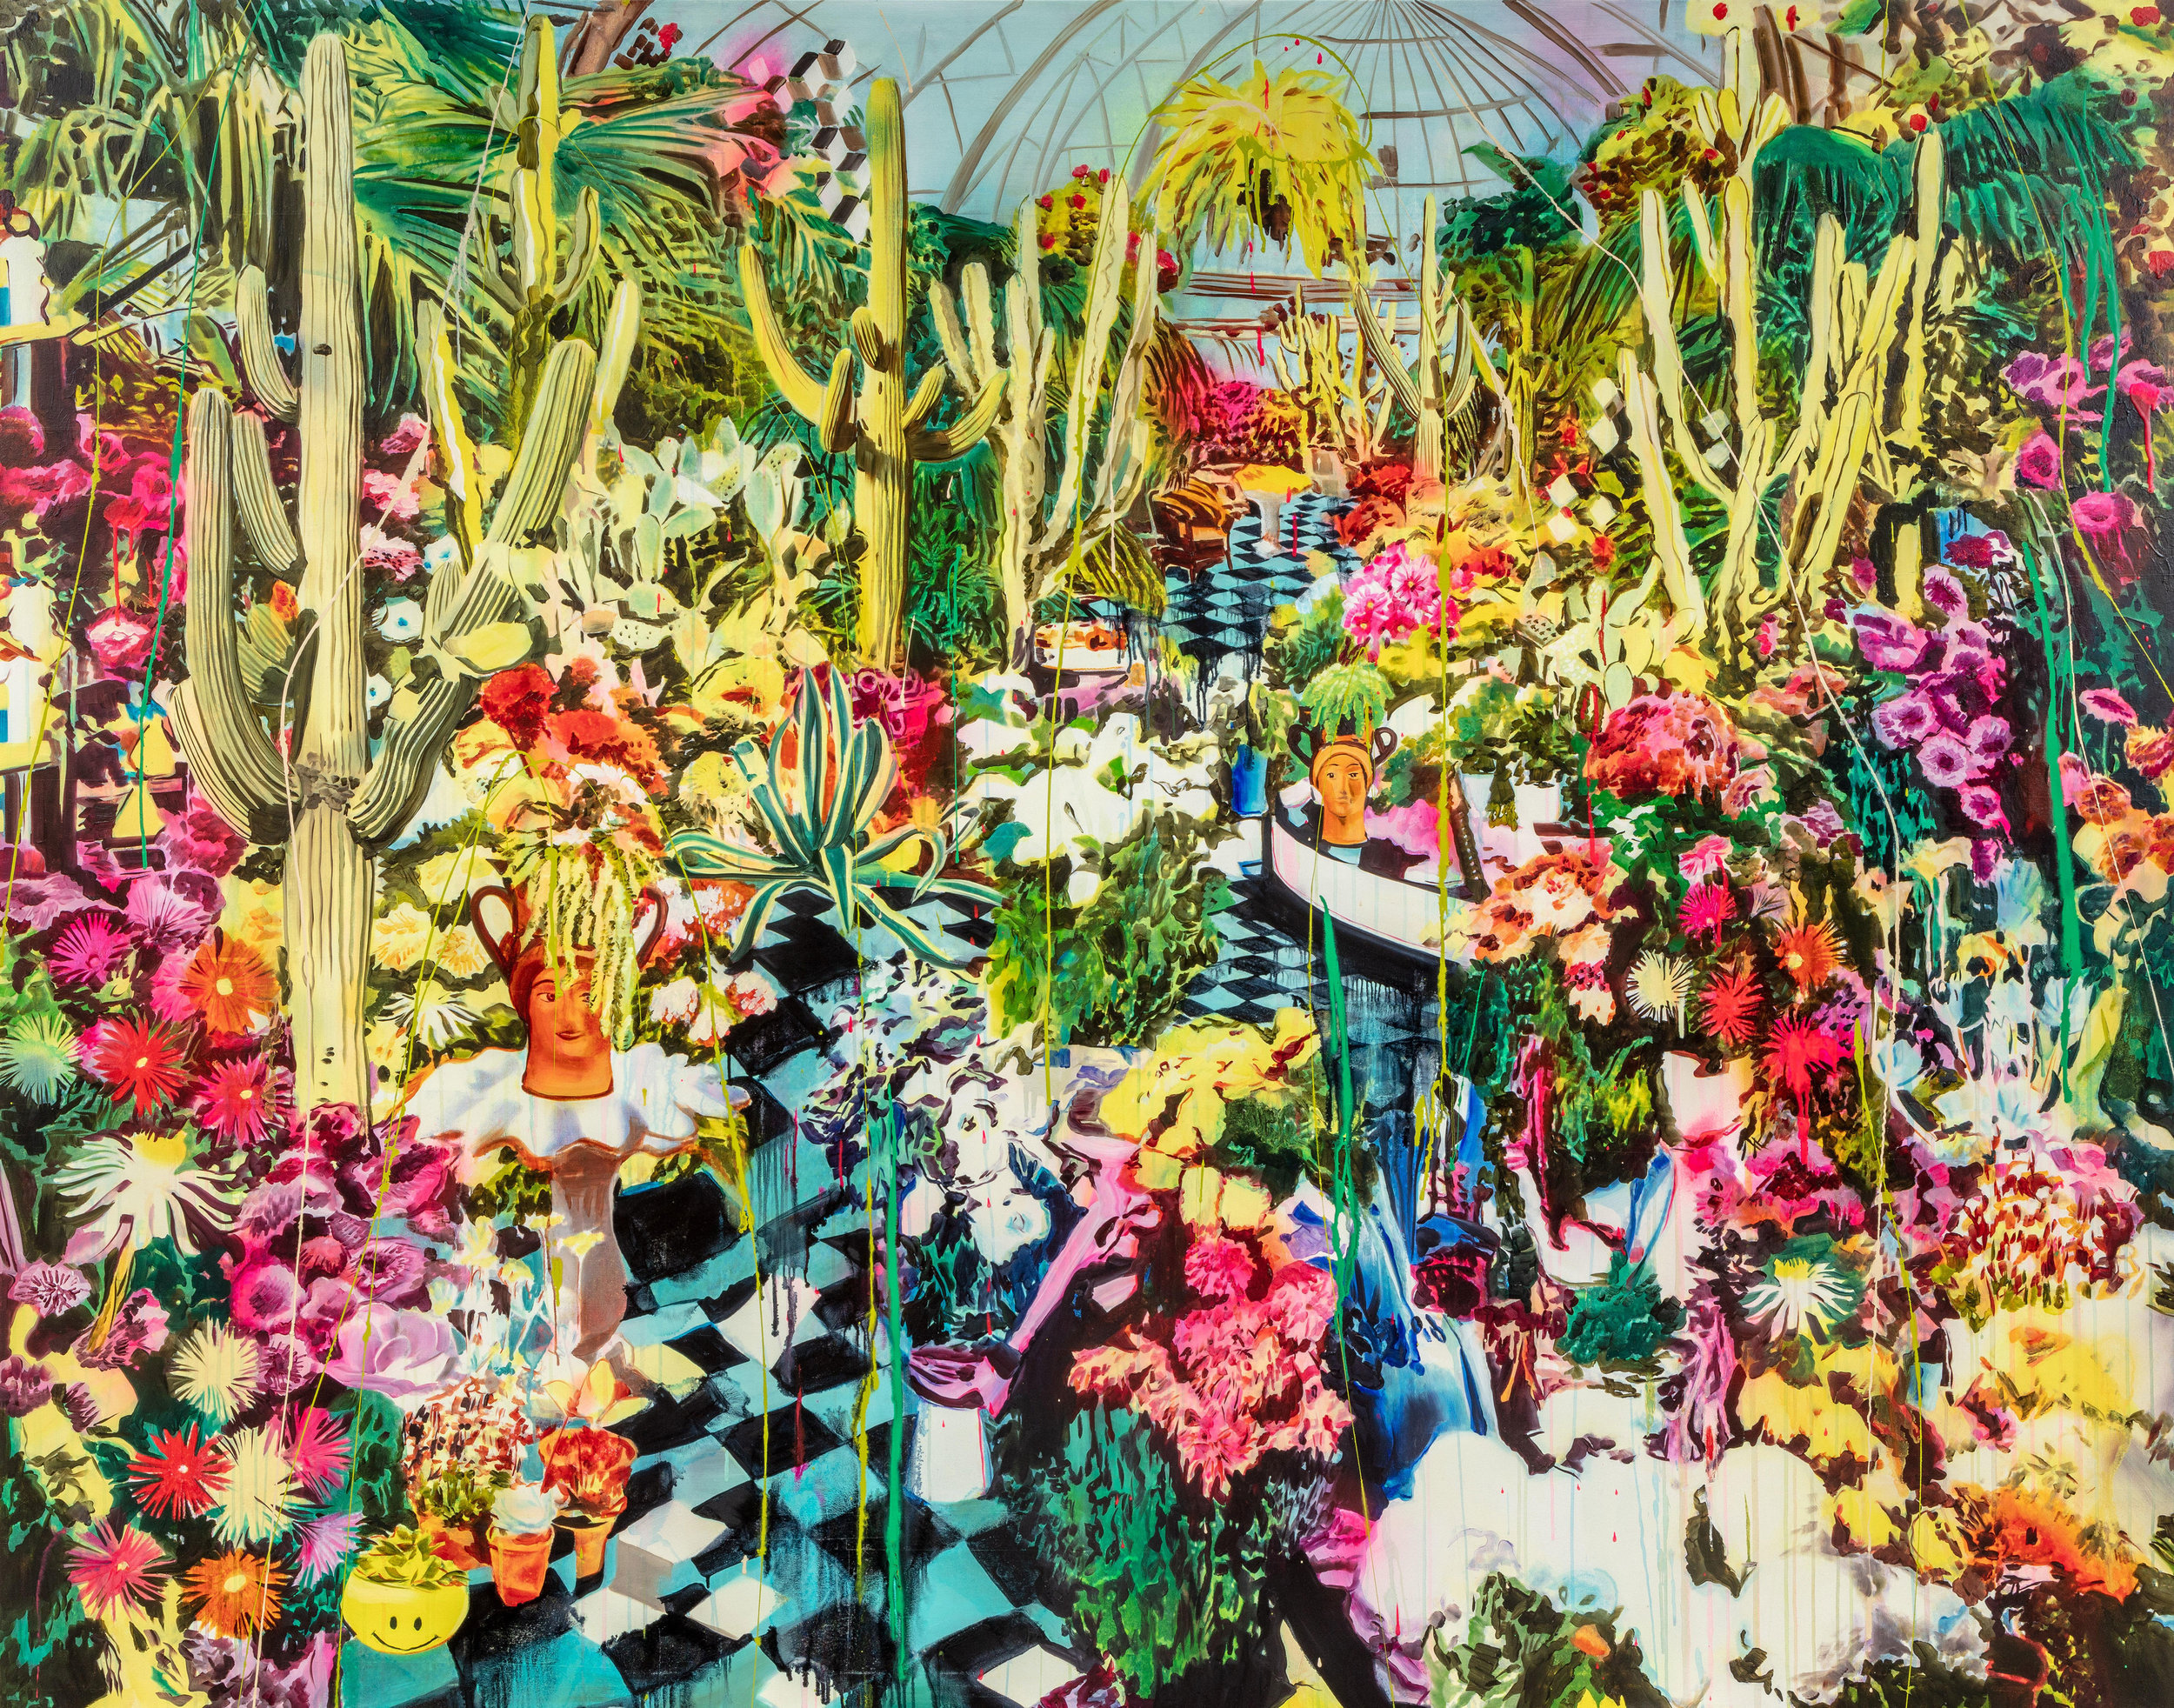 ROSSON CROW,  BELLE ISLE CONSERVATORY , 2018   COURTESY OF LIBRARY STREET COLLECTIVE